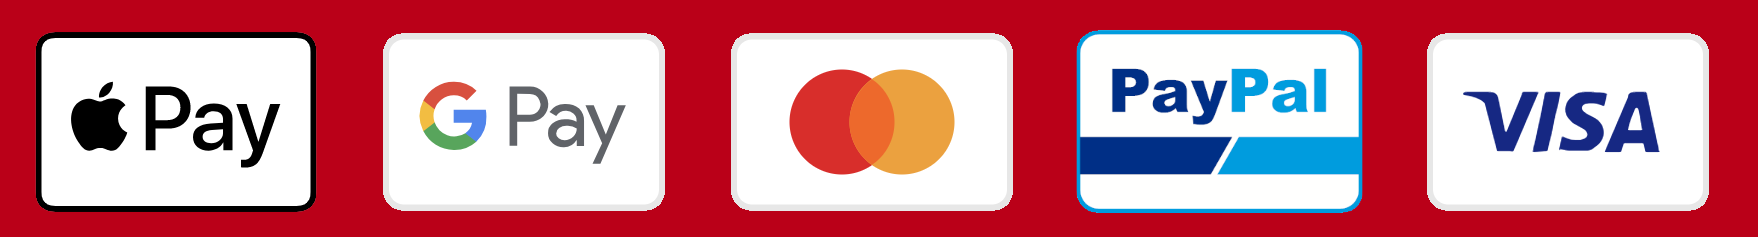 Apple Pay Google Pay MasterCard Visa